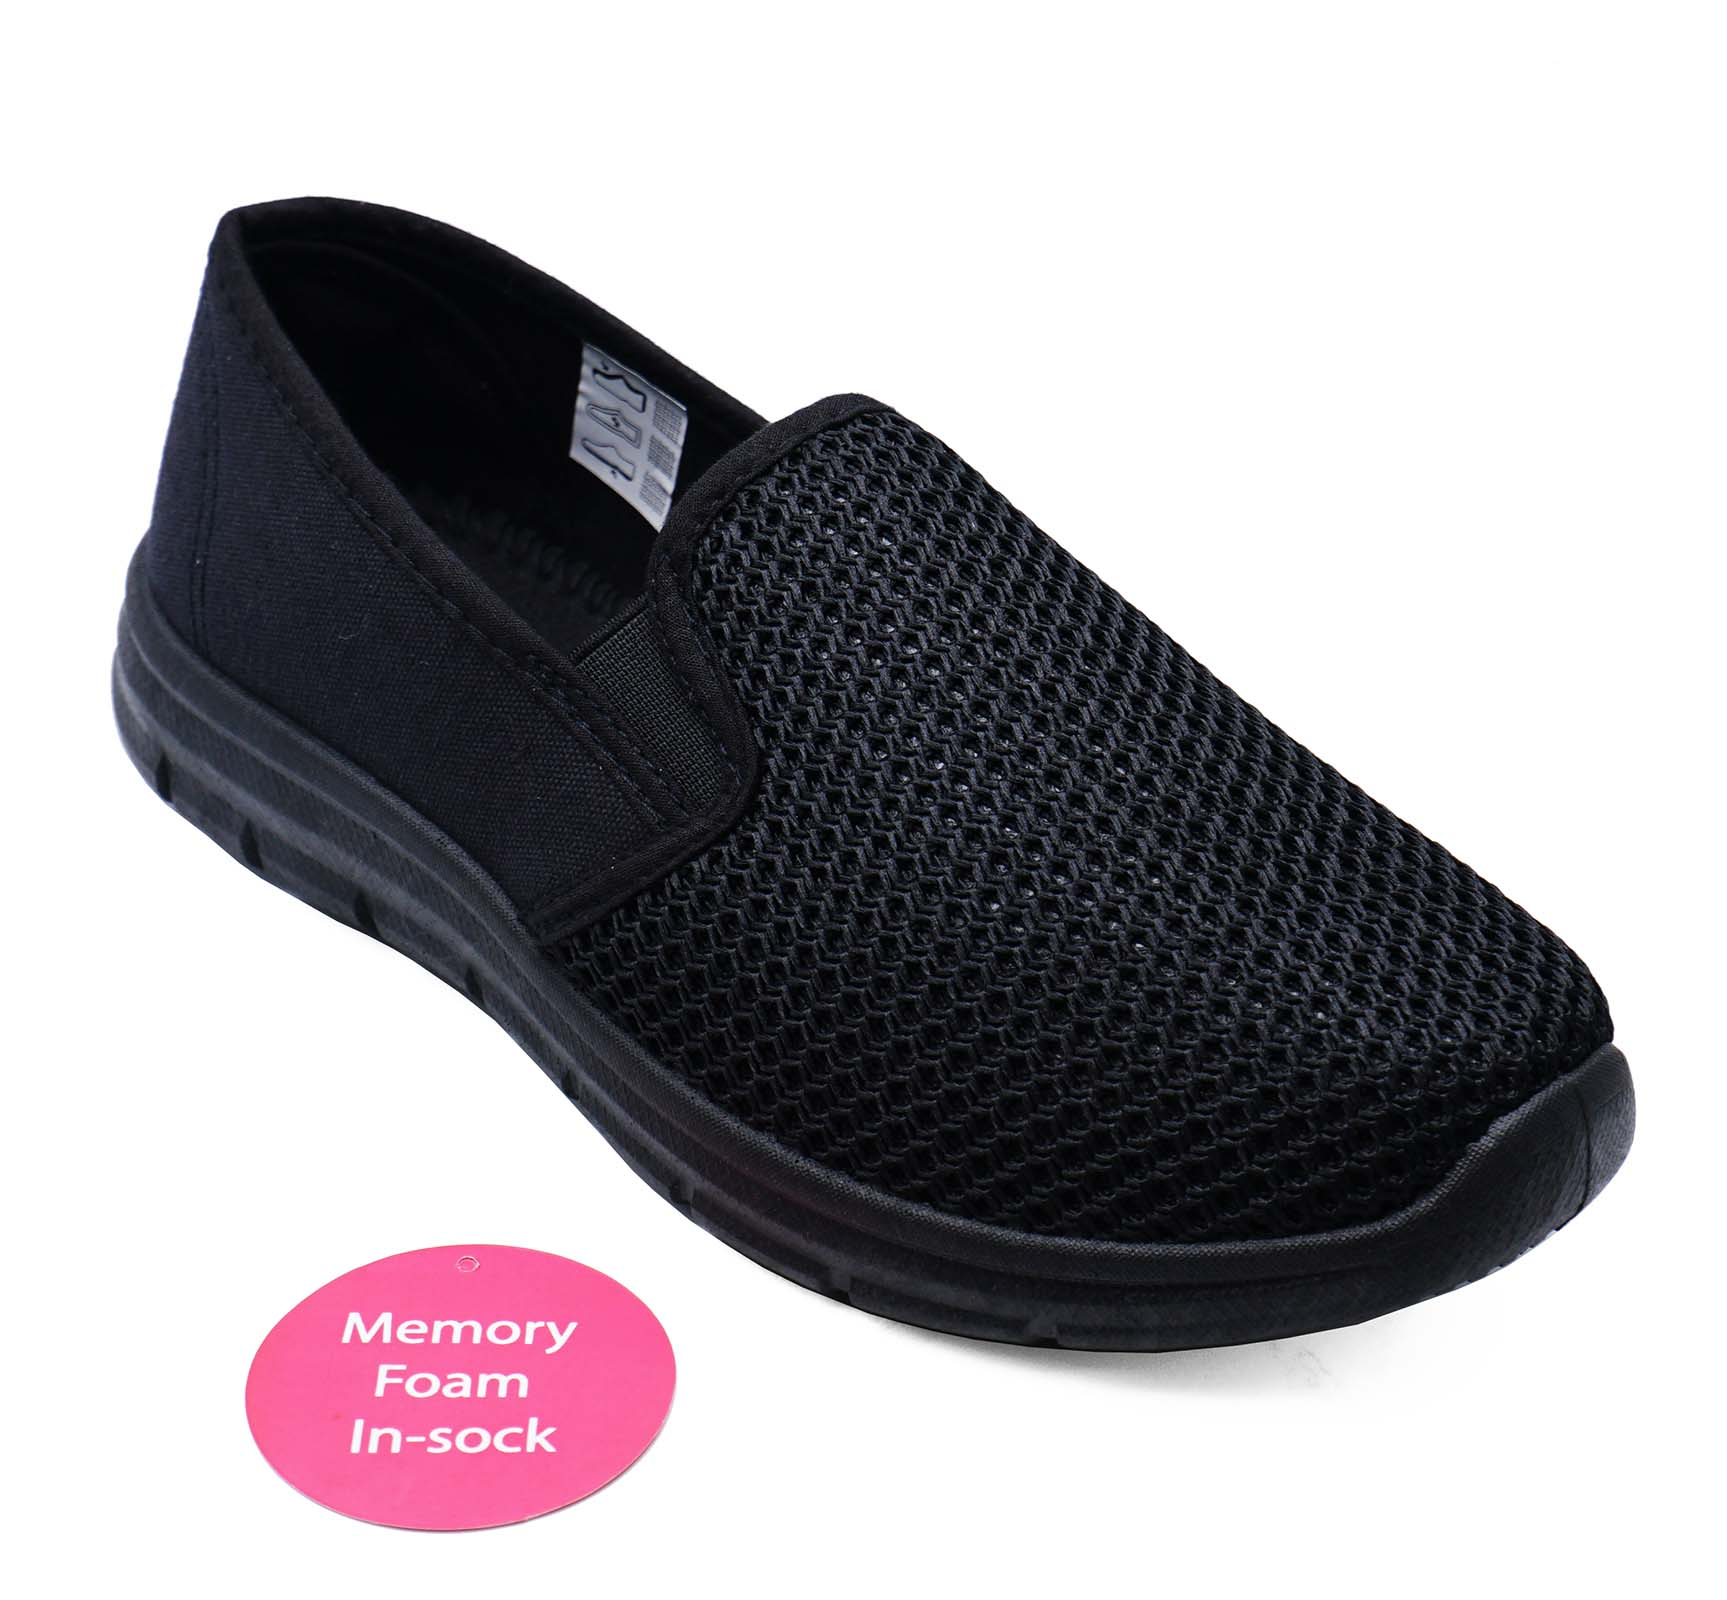 thumbnail 6 - LADIES-BLACK-SLIP-ON-COMFY-MEMORY-FOAM-TRAINER-PLIMSOLLS-CASUAL-PUMPS-SHOES-3-9